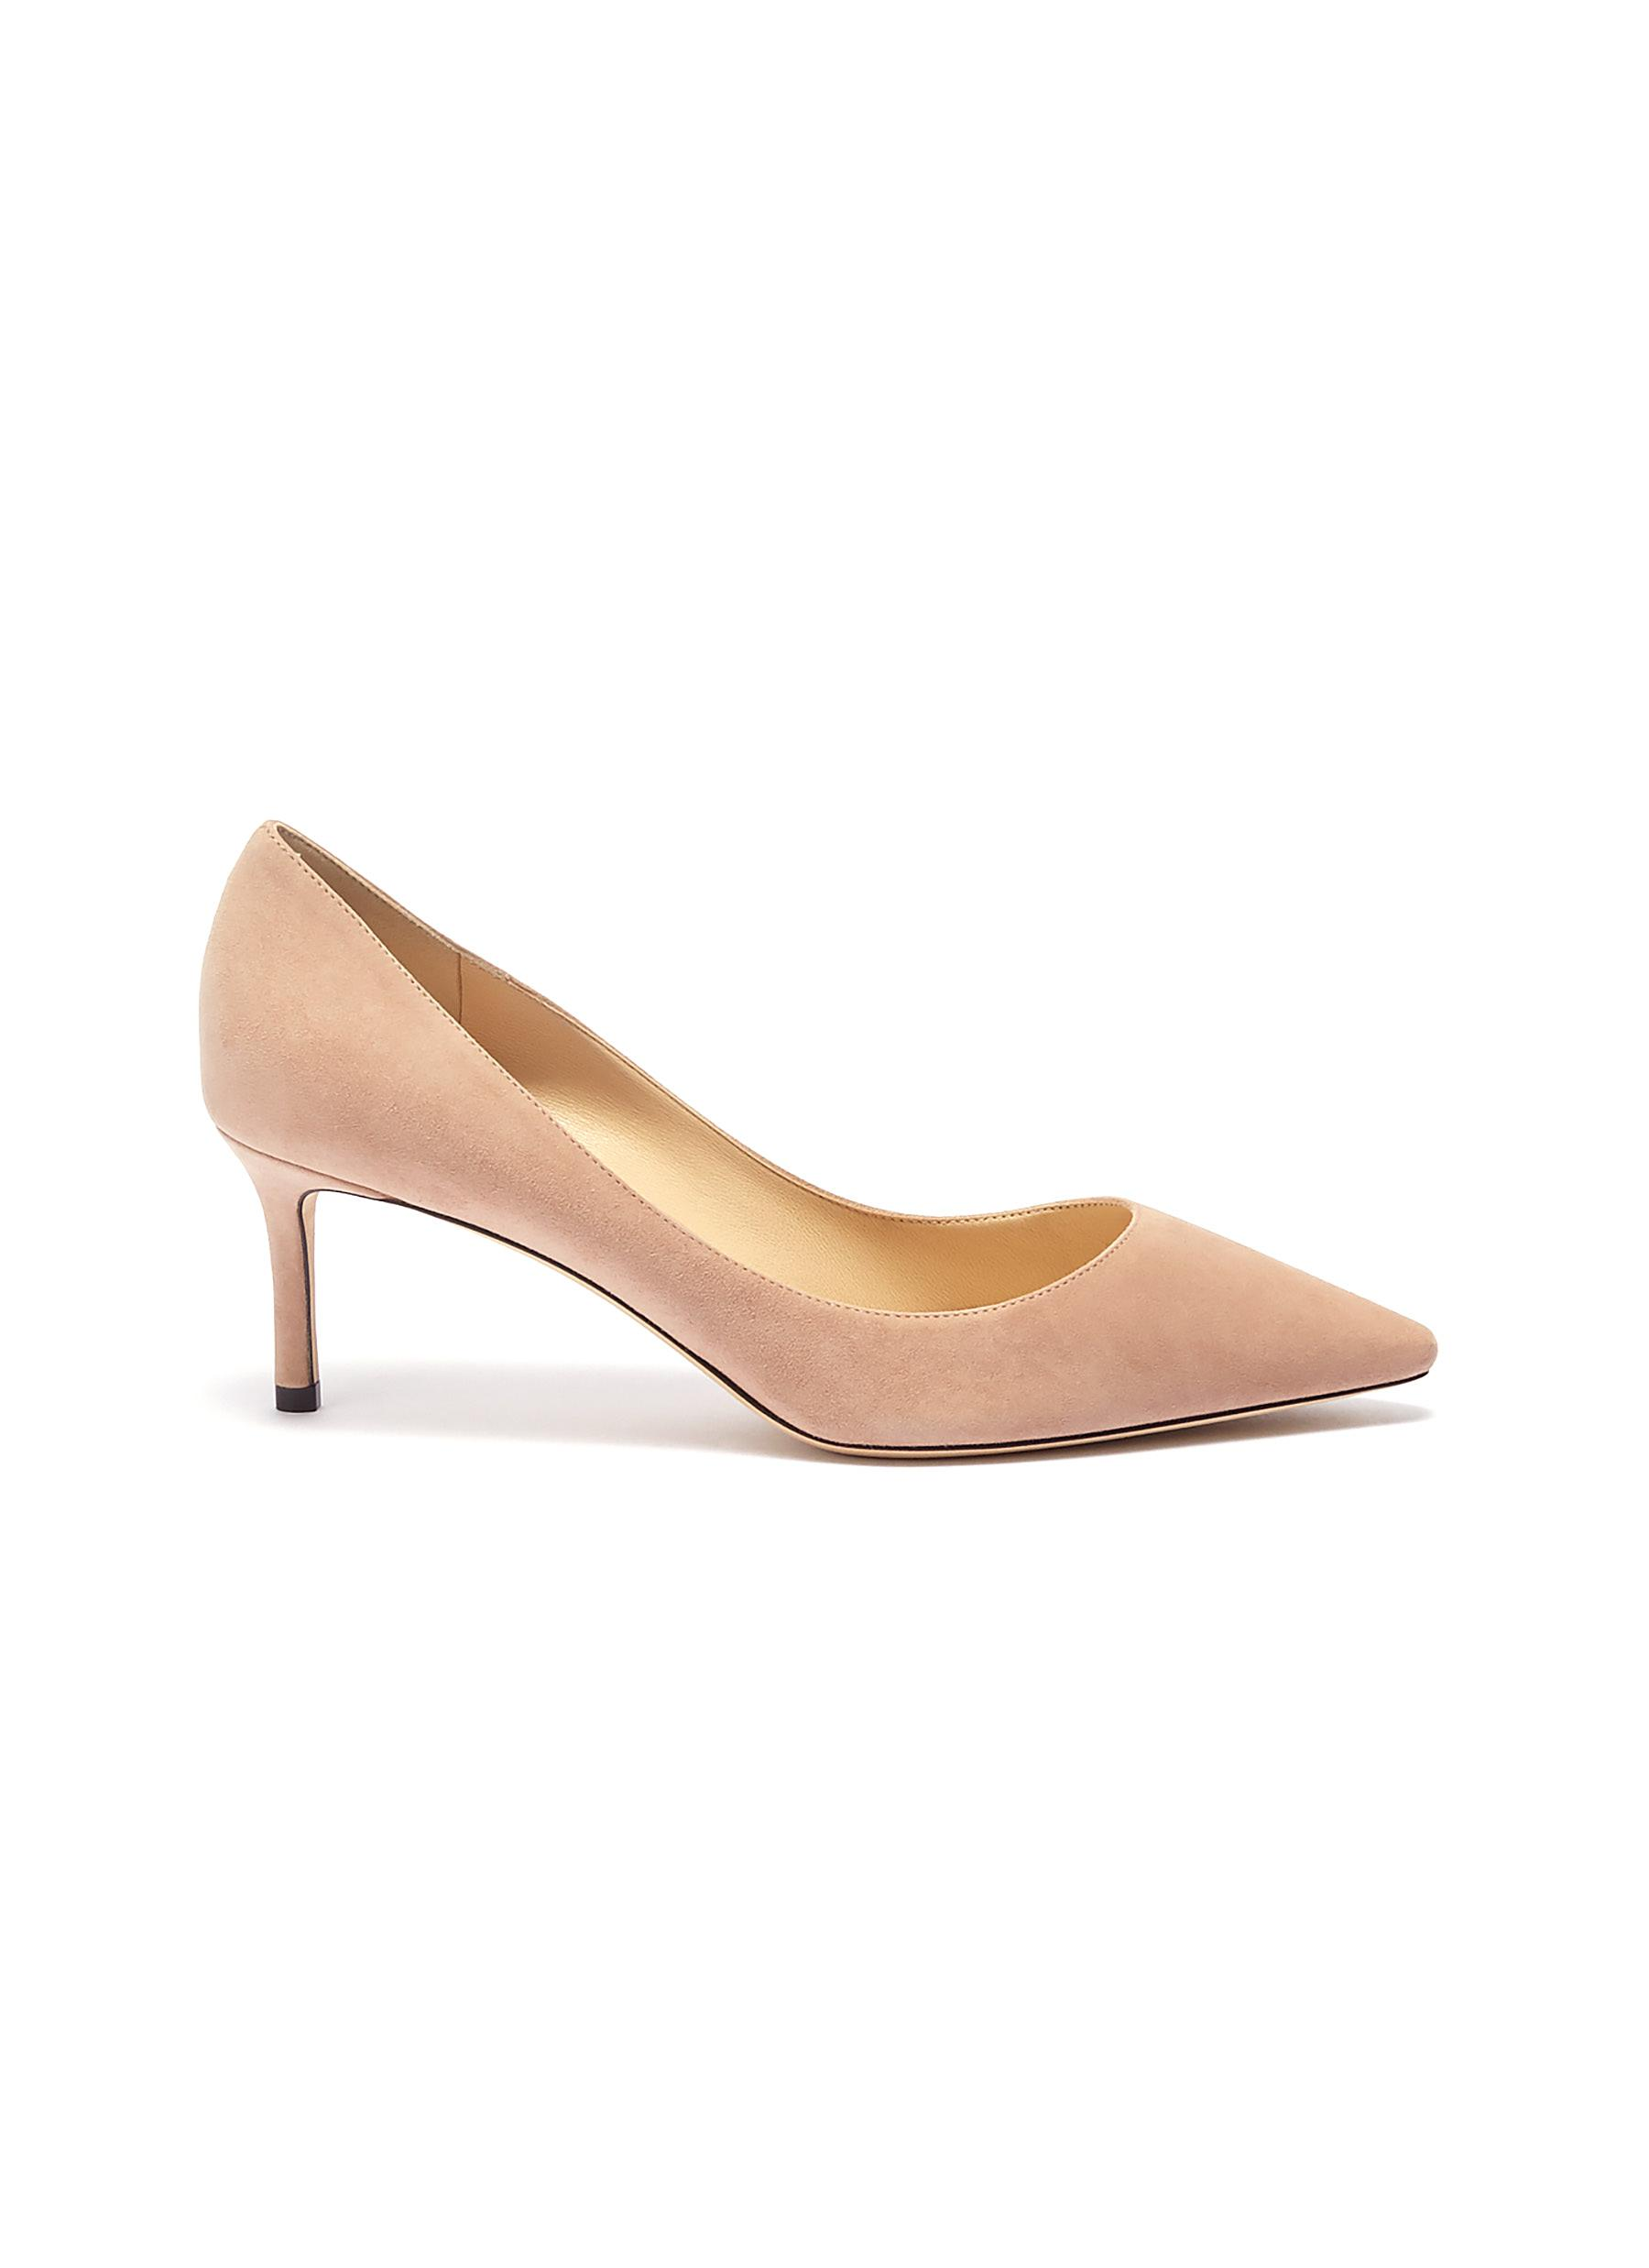 Romy 60 suede pumps by Jimmy Choo